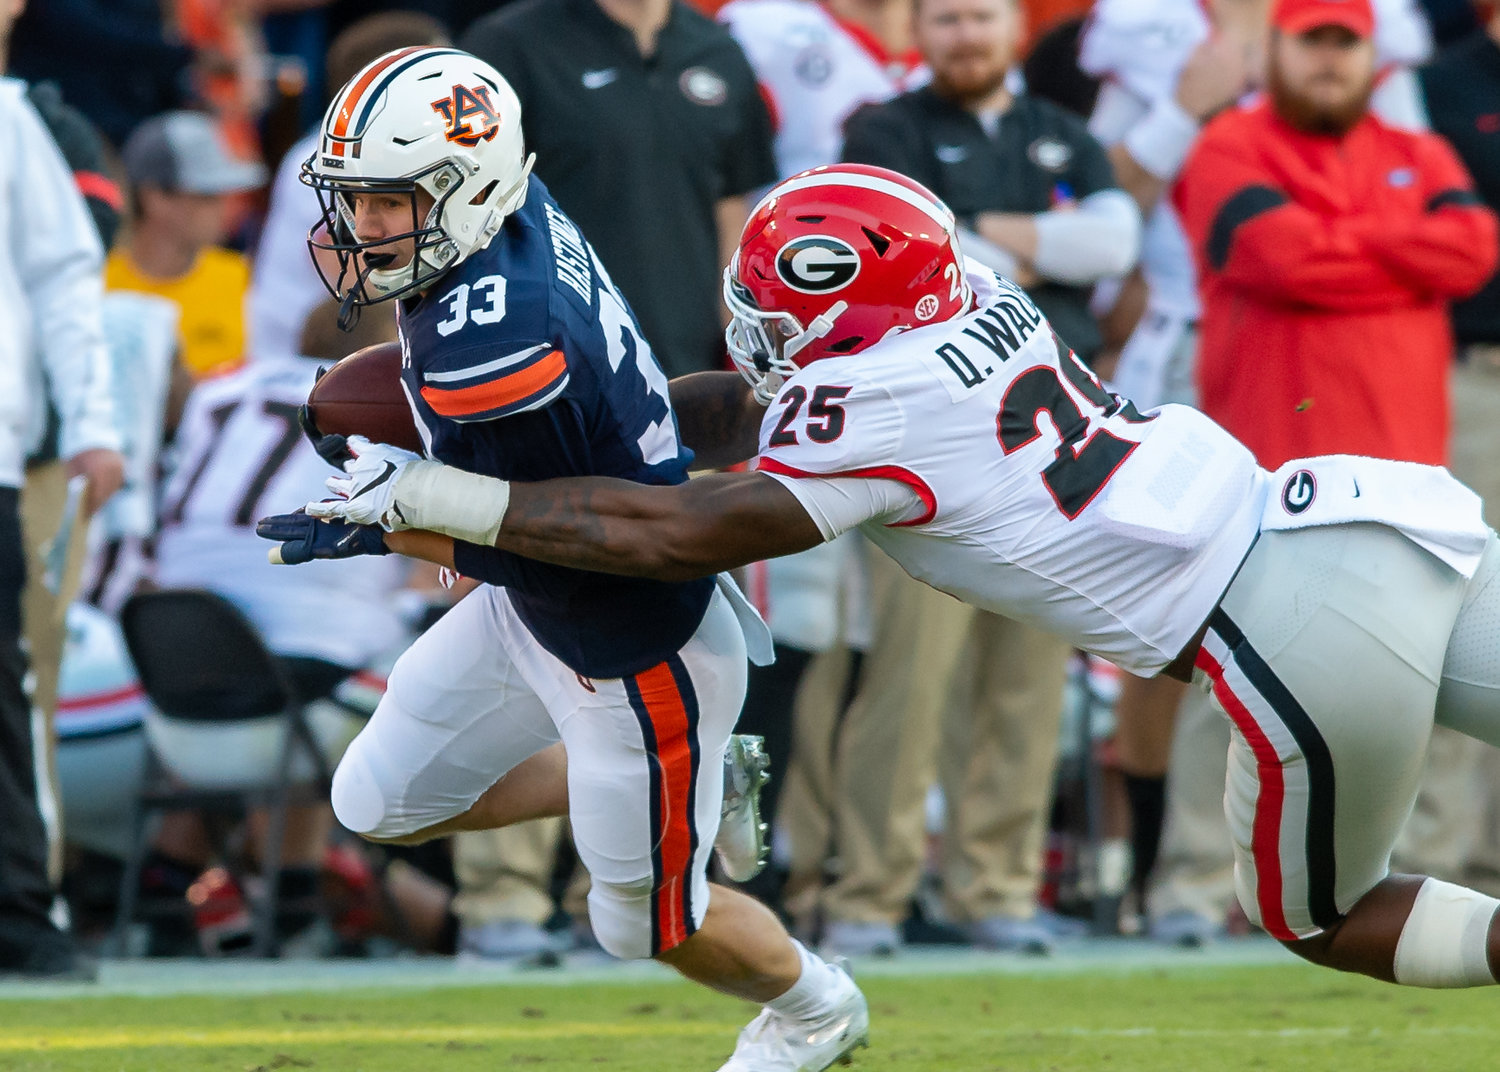 Auburn Tigers wide receiver Will Hastings (33) is tackled by Georgia Bulldogs linebacker Quay Walker (25) during the first half of Saturday's game, at Jordan-Hare Stadium in Auburn,, AL. Daily Mountain Eagle -  Jeff Johnsey